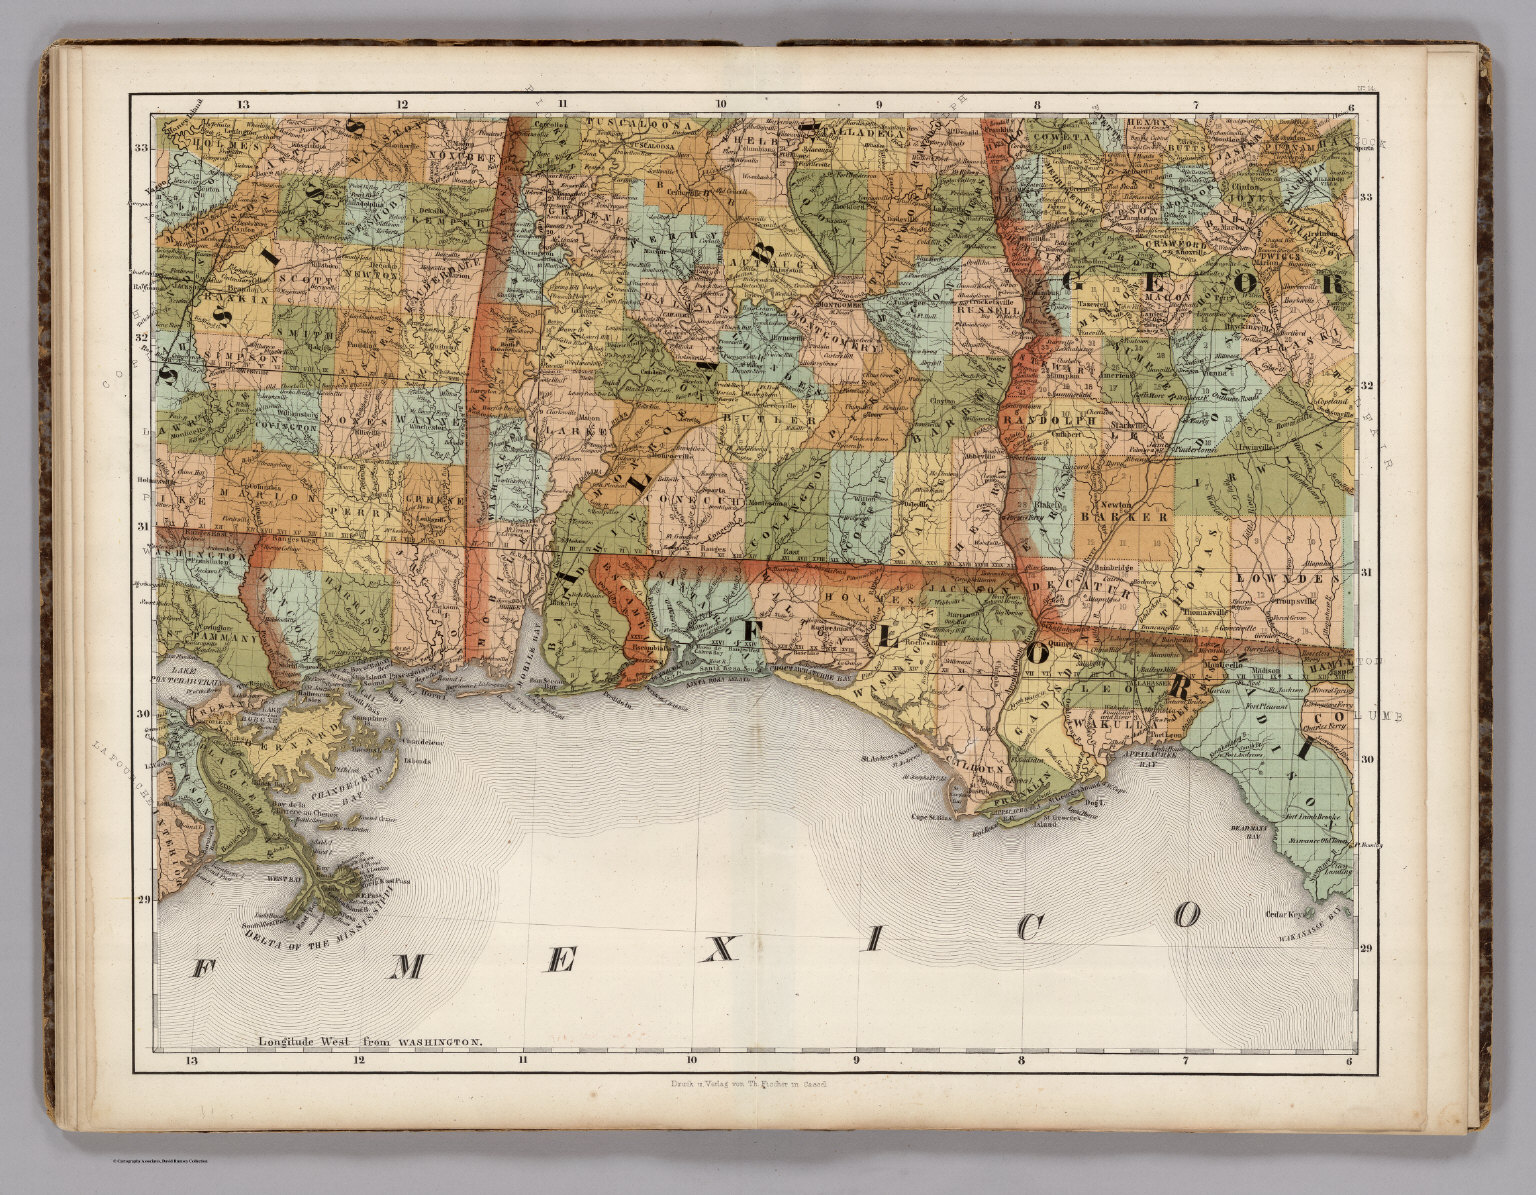 Mississippi Alabama Florida Georgia David Rumsey Historical - Map of alabama and florida